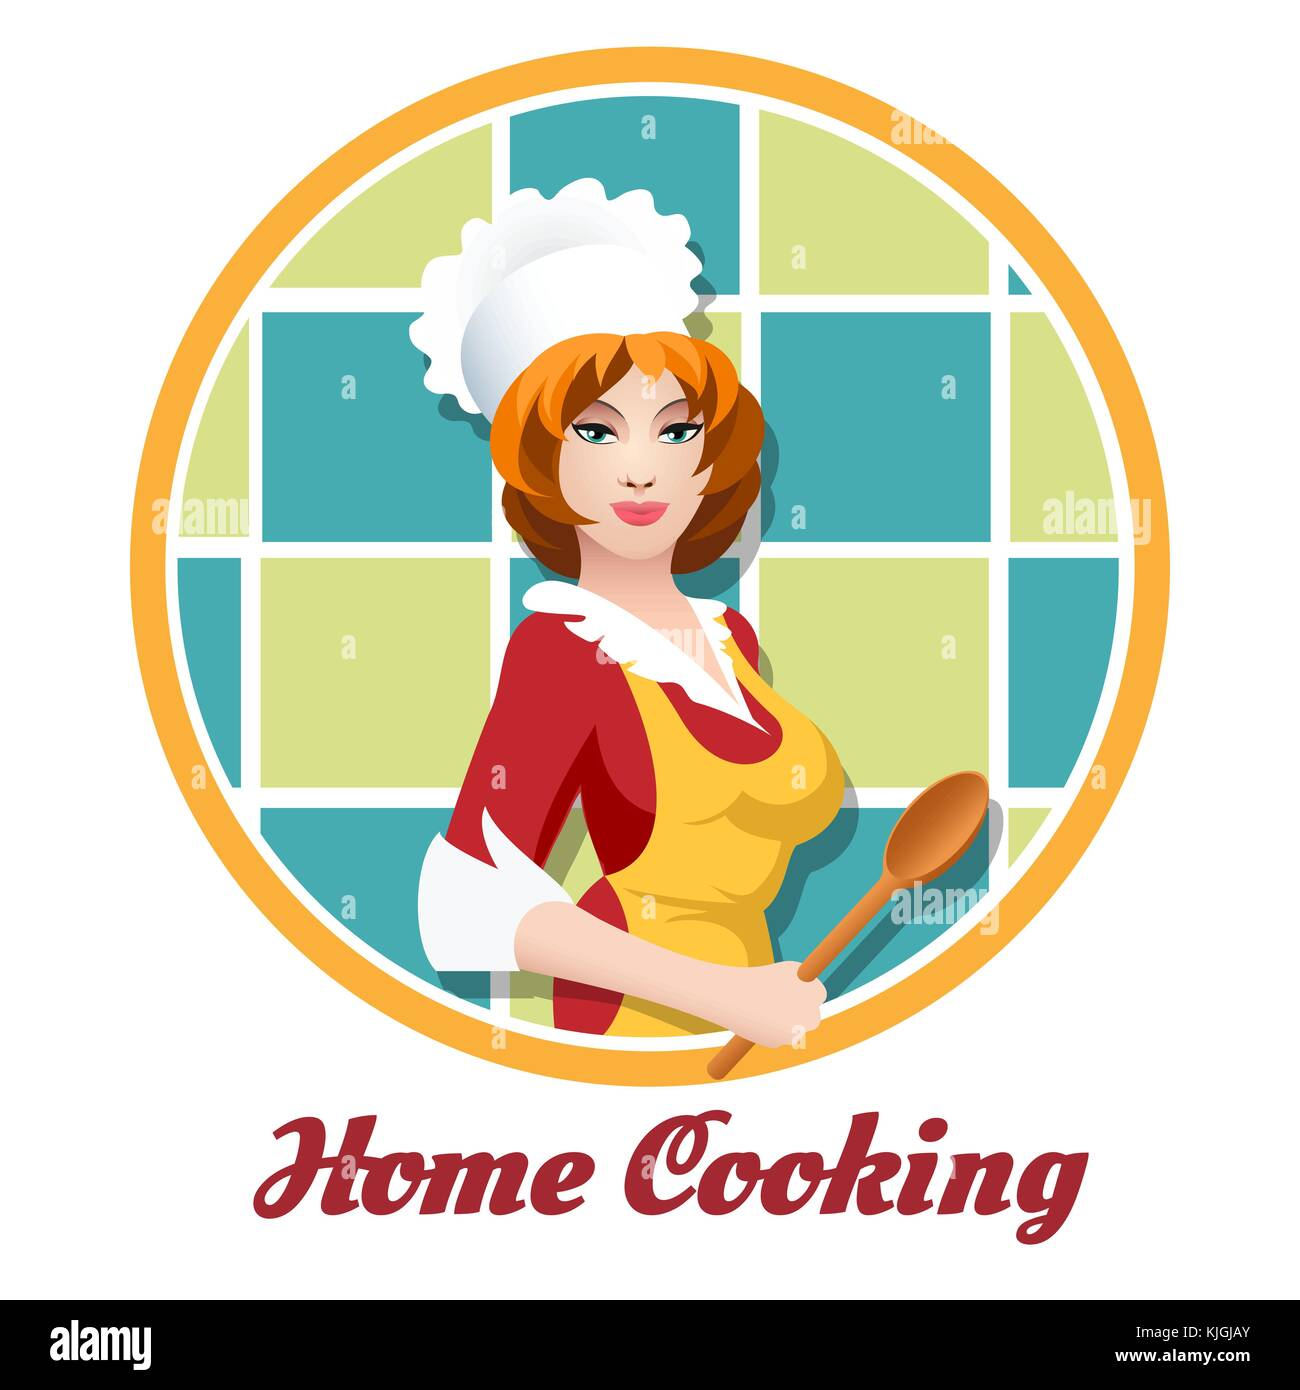 Retro Woman Cooking Stockfotos & Retro Woman Cooking